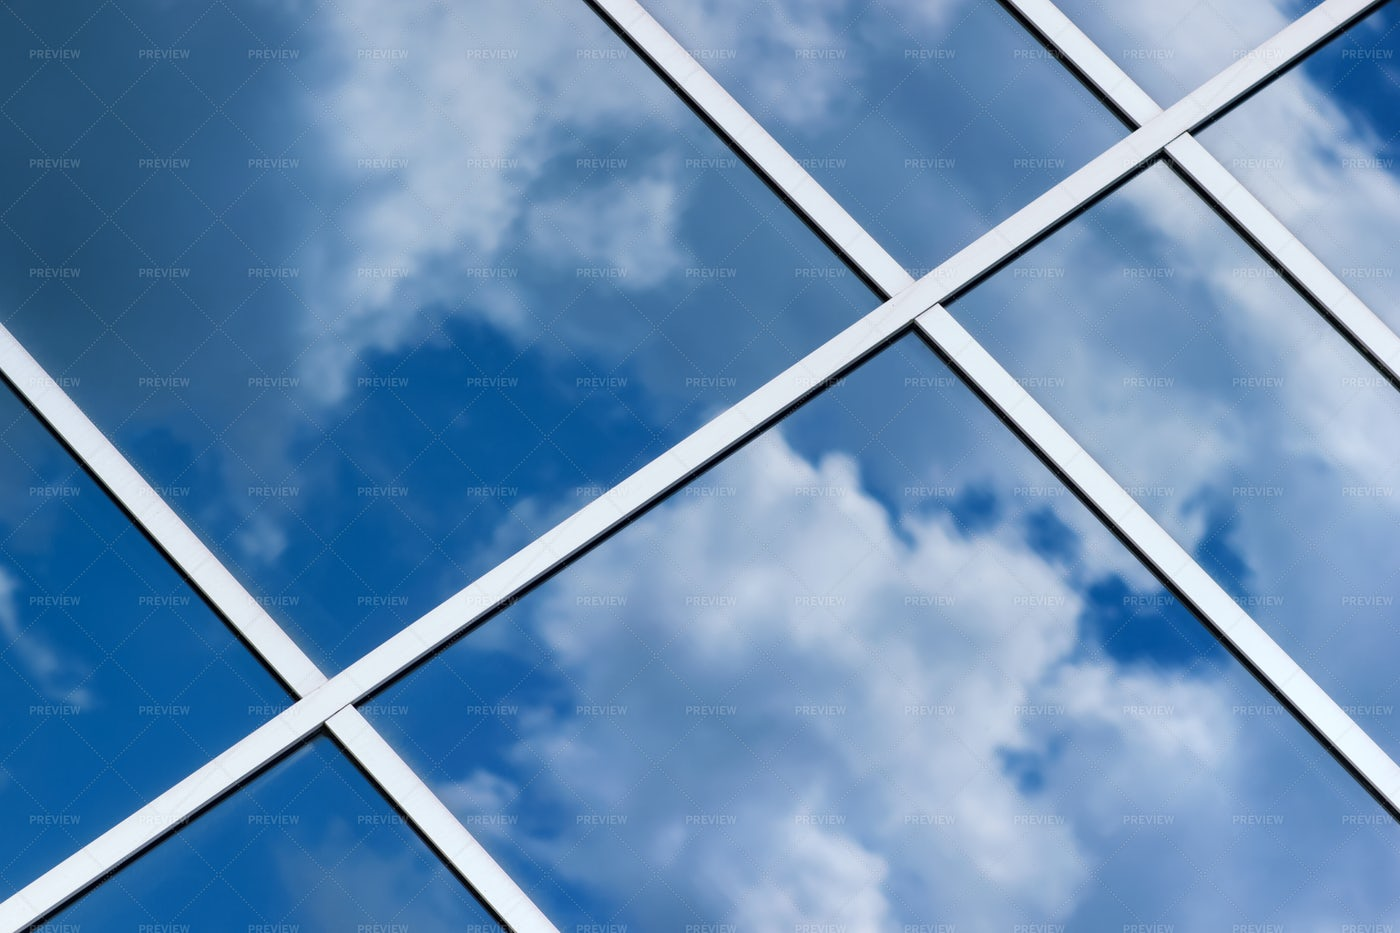 Glass Panels In The Sky: Stock Photos